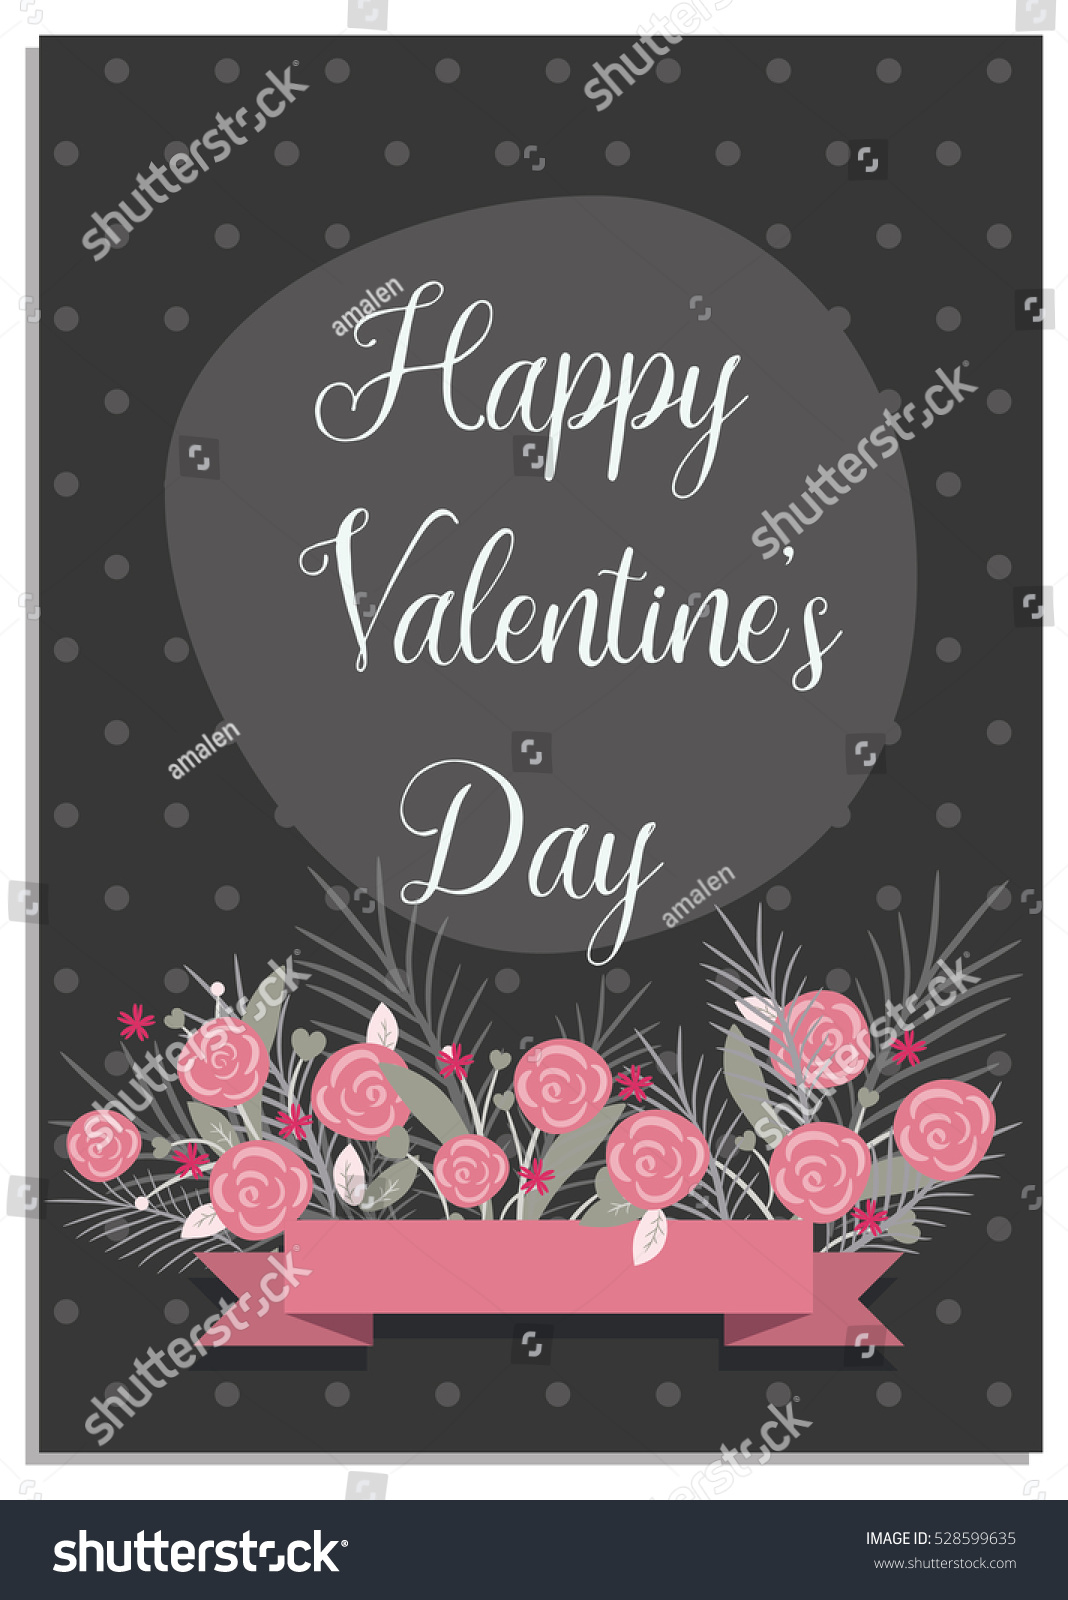 Love collection cards templates valentines day stock vector love collection with cards templates for valentines day stickers birthday save the kristyandbryce Images